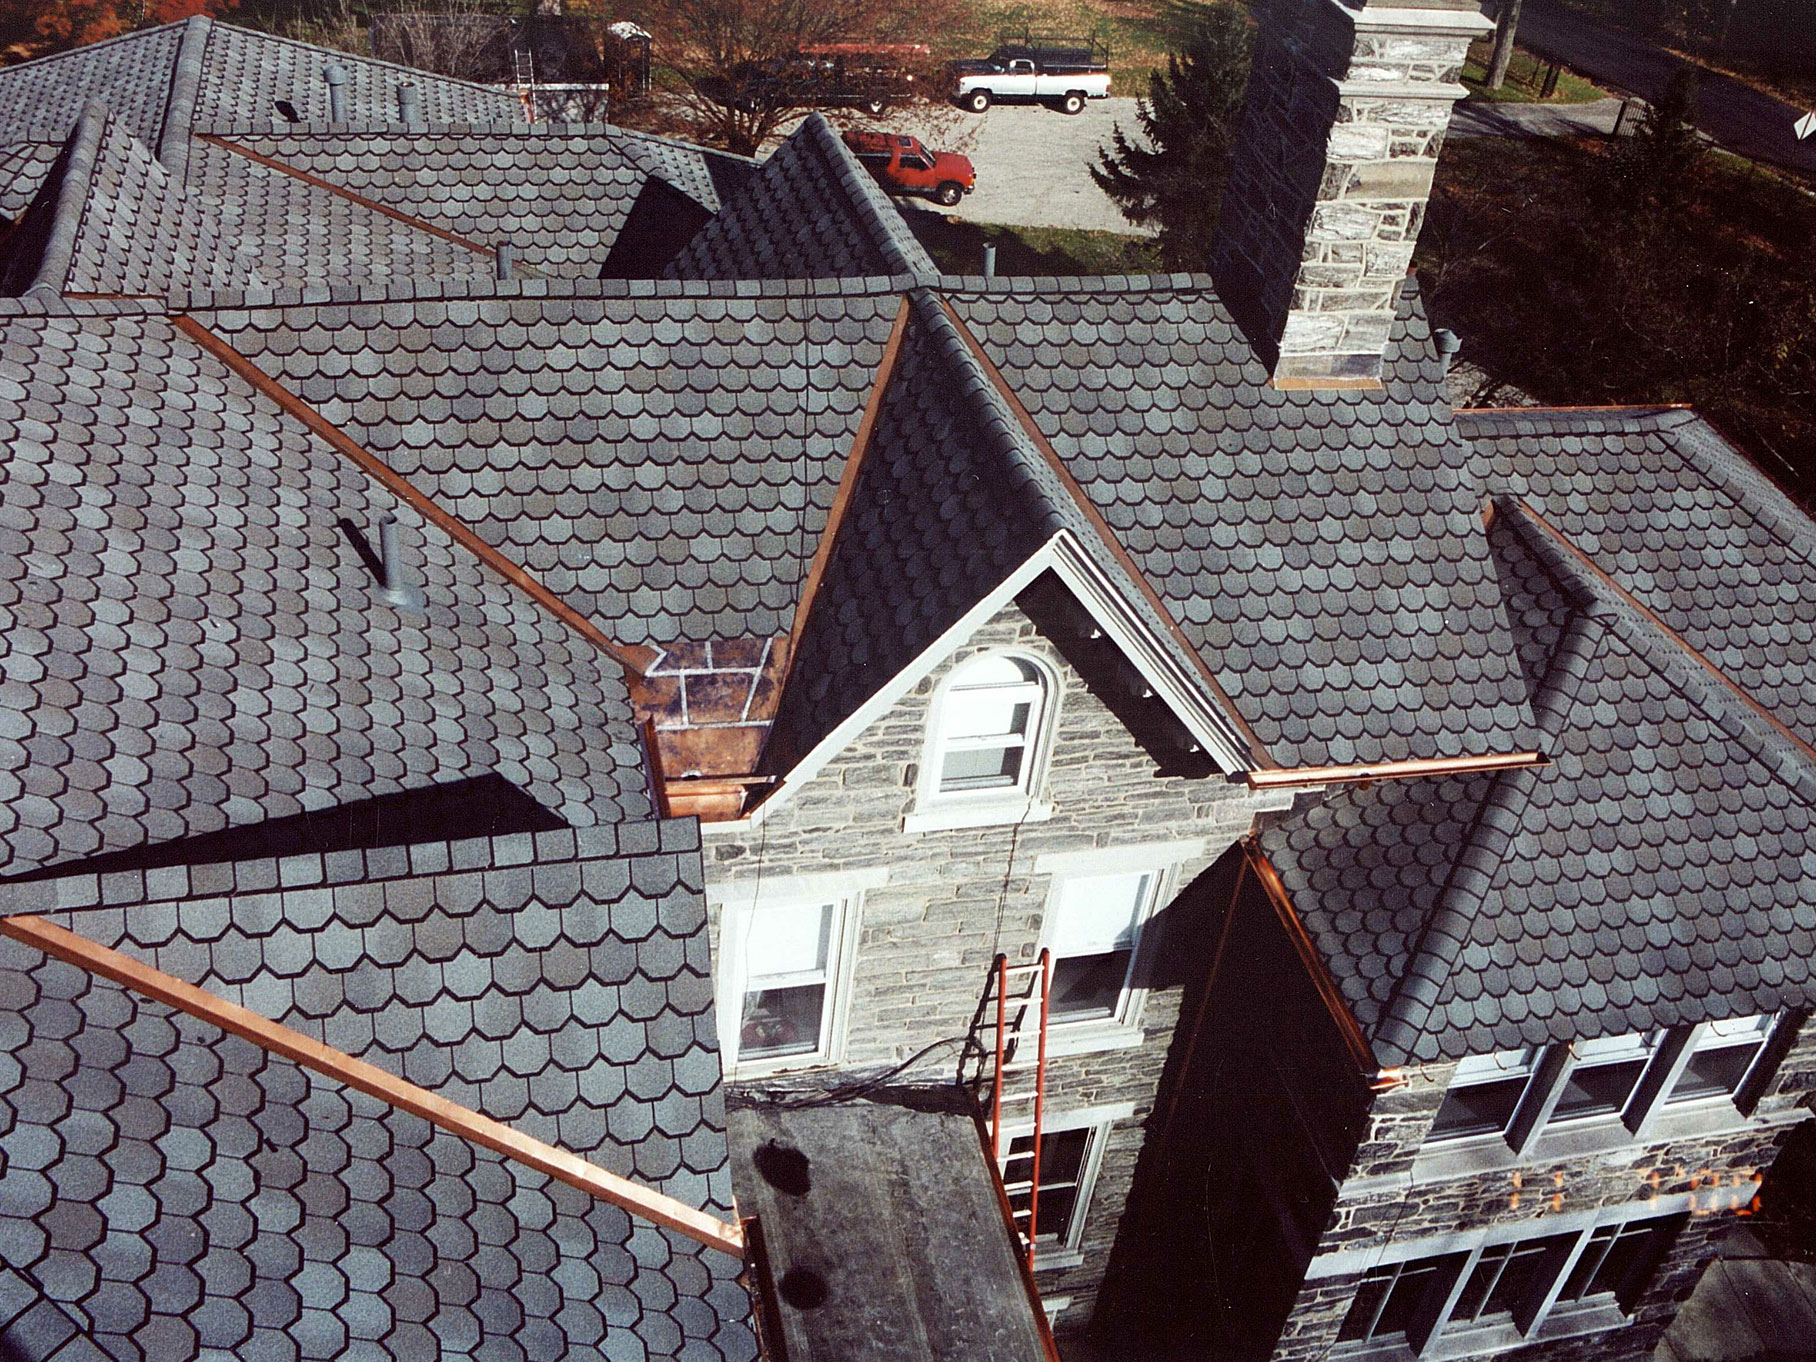 Asphalt Commercial Roof Services Russell Roofing And Exteriors